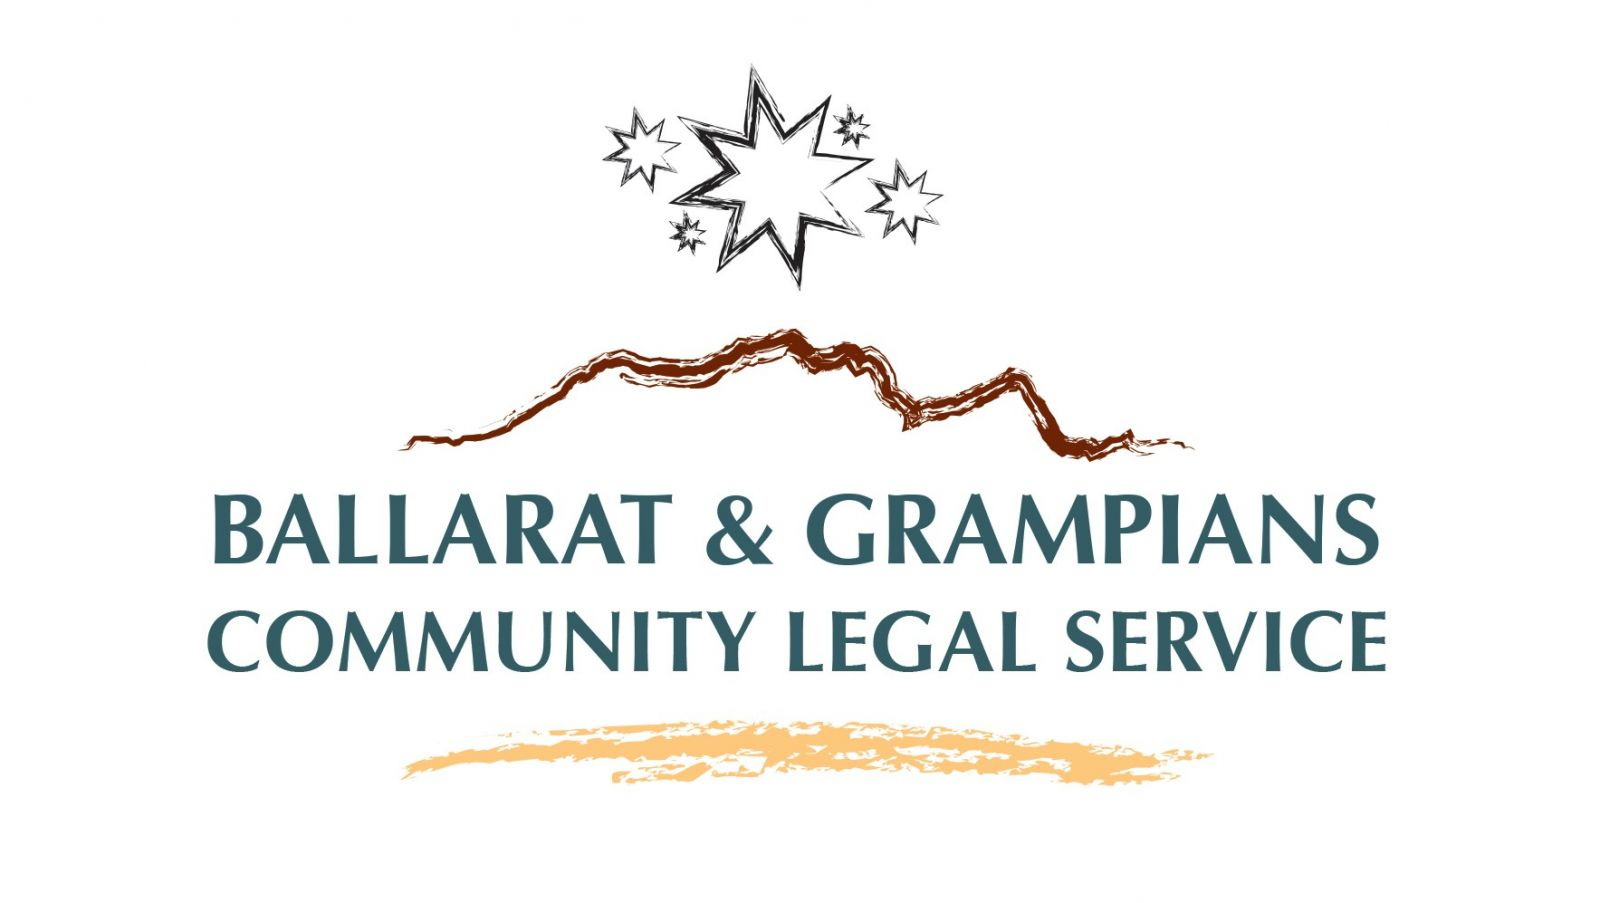 Ballarat & Grampians Community Legal Service